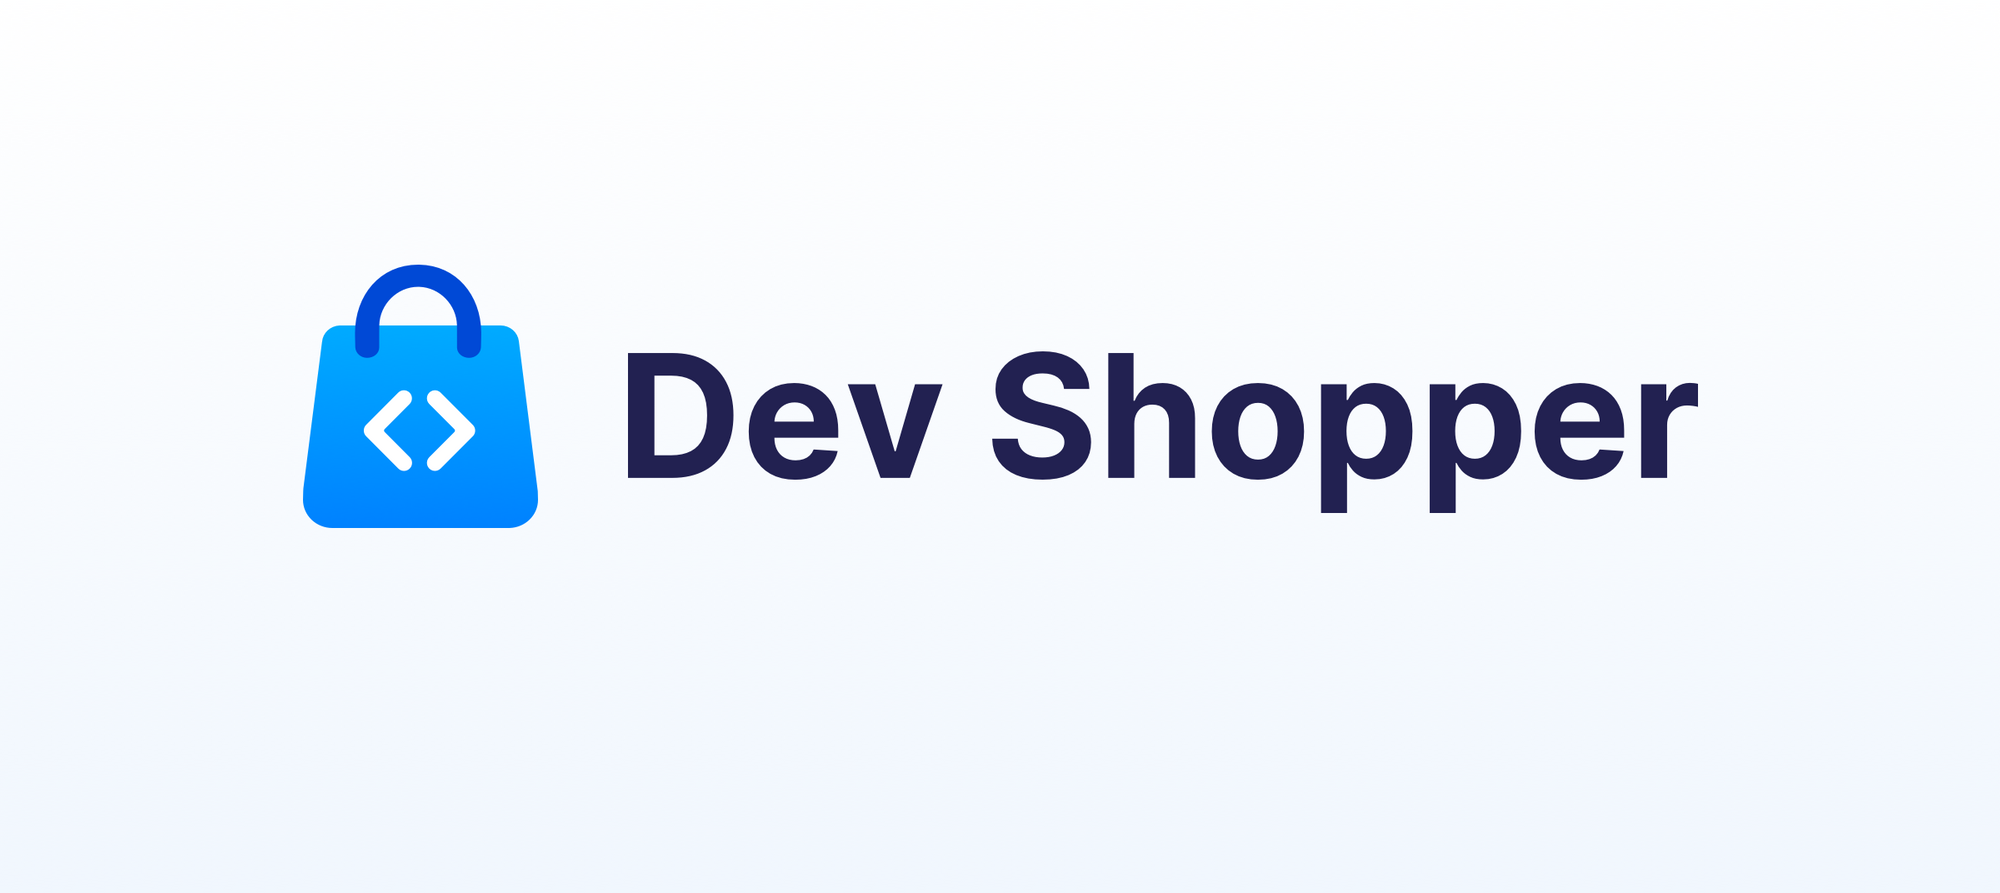 Dev Shopper built on Bubble with no code